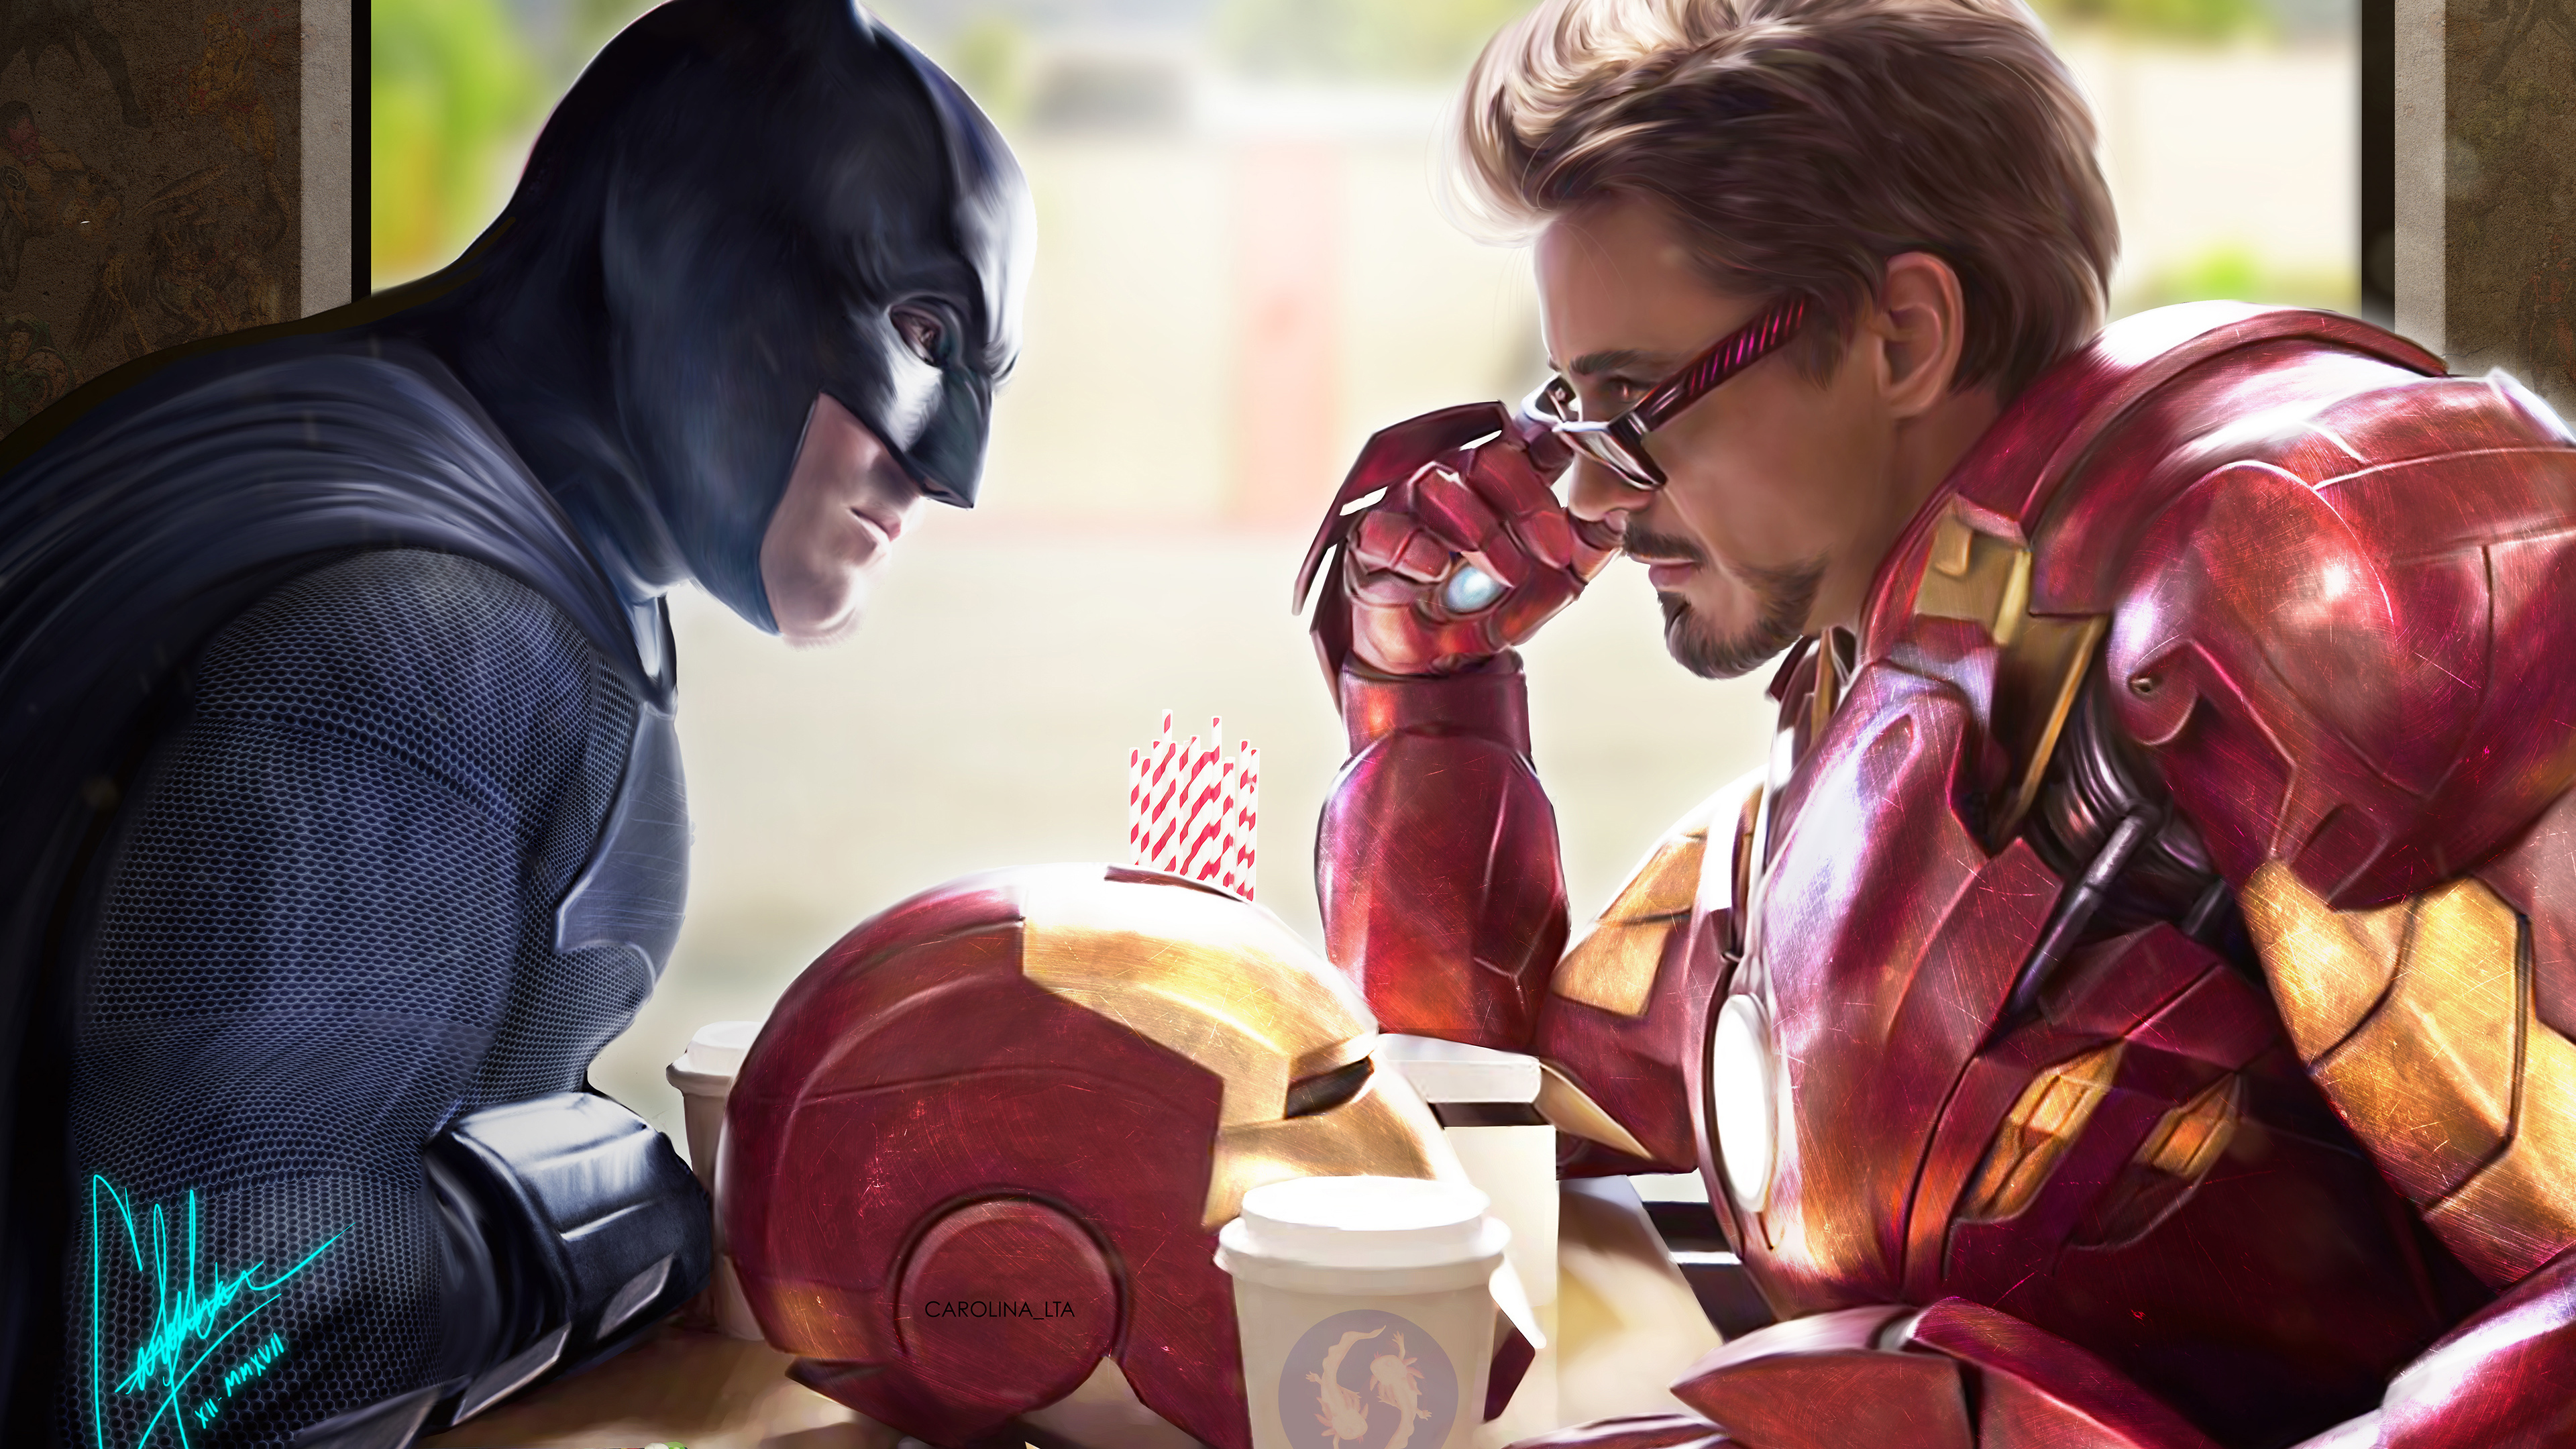 iron man and batman 1538786548 - Iron Man And Batman - superheroes wallpapers, iron man wallpapers, hd-wallpapers, behance wallpapers, batman wallpapers, artwork wallpapers, artist wallpapers, 4k-wallpapers